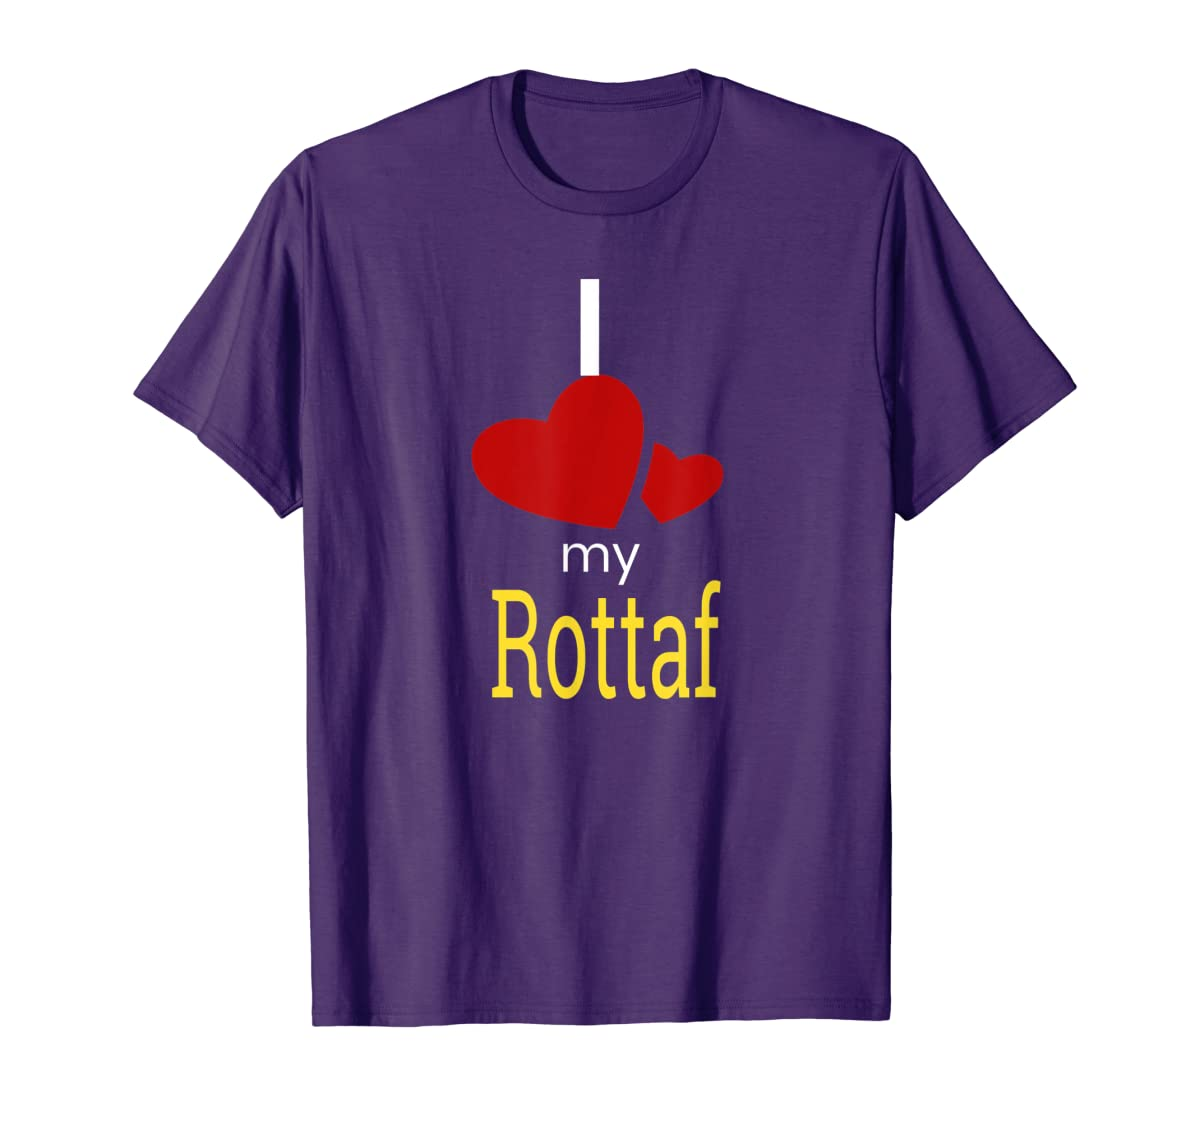 Rottaf Dog Shirt Love Rottweiler + Afghan Hound =  T-Shirt-Men's T-Shirt-Purple